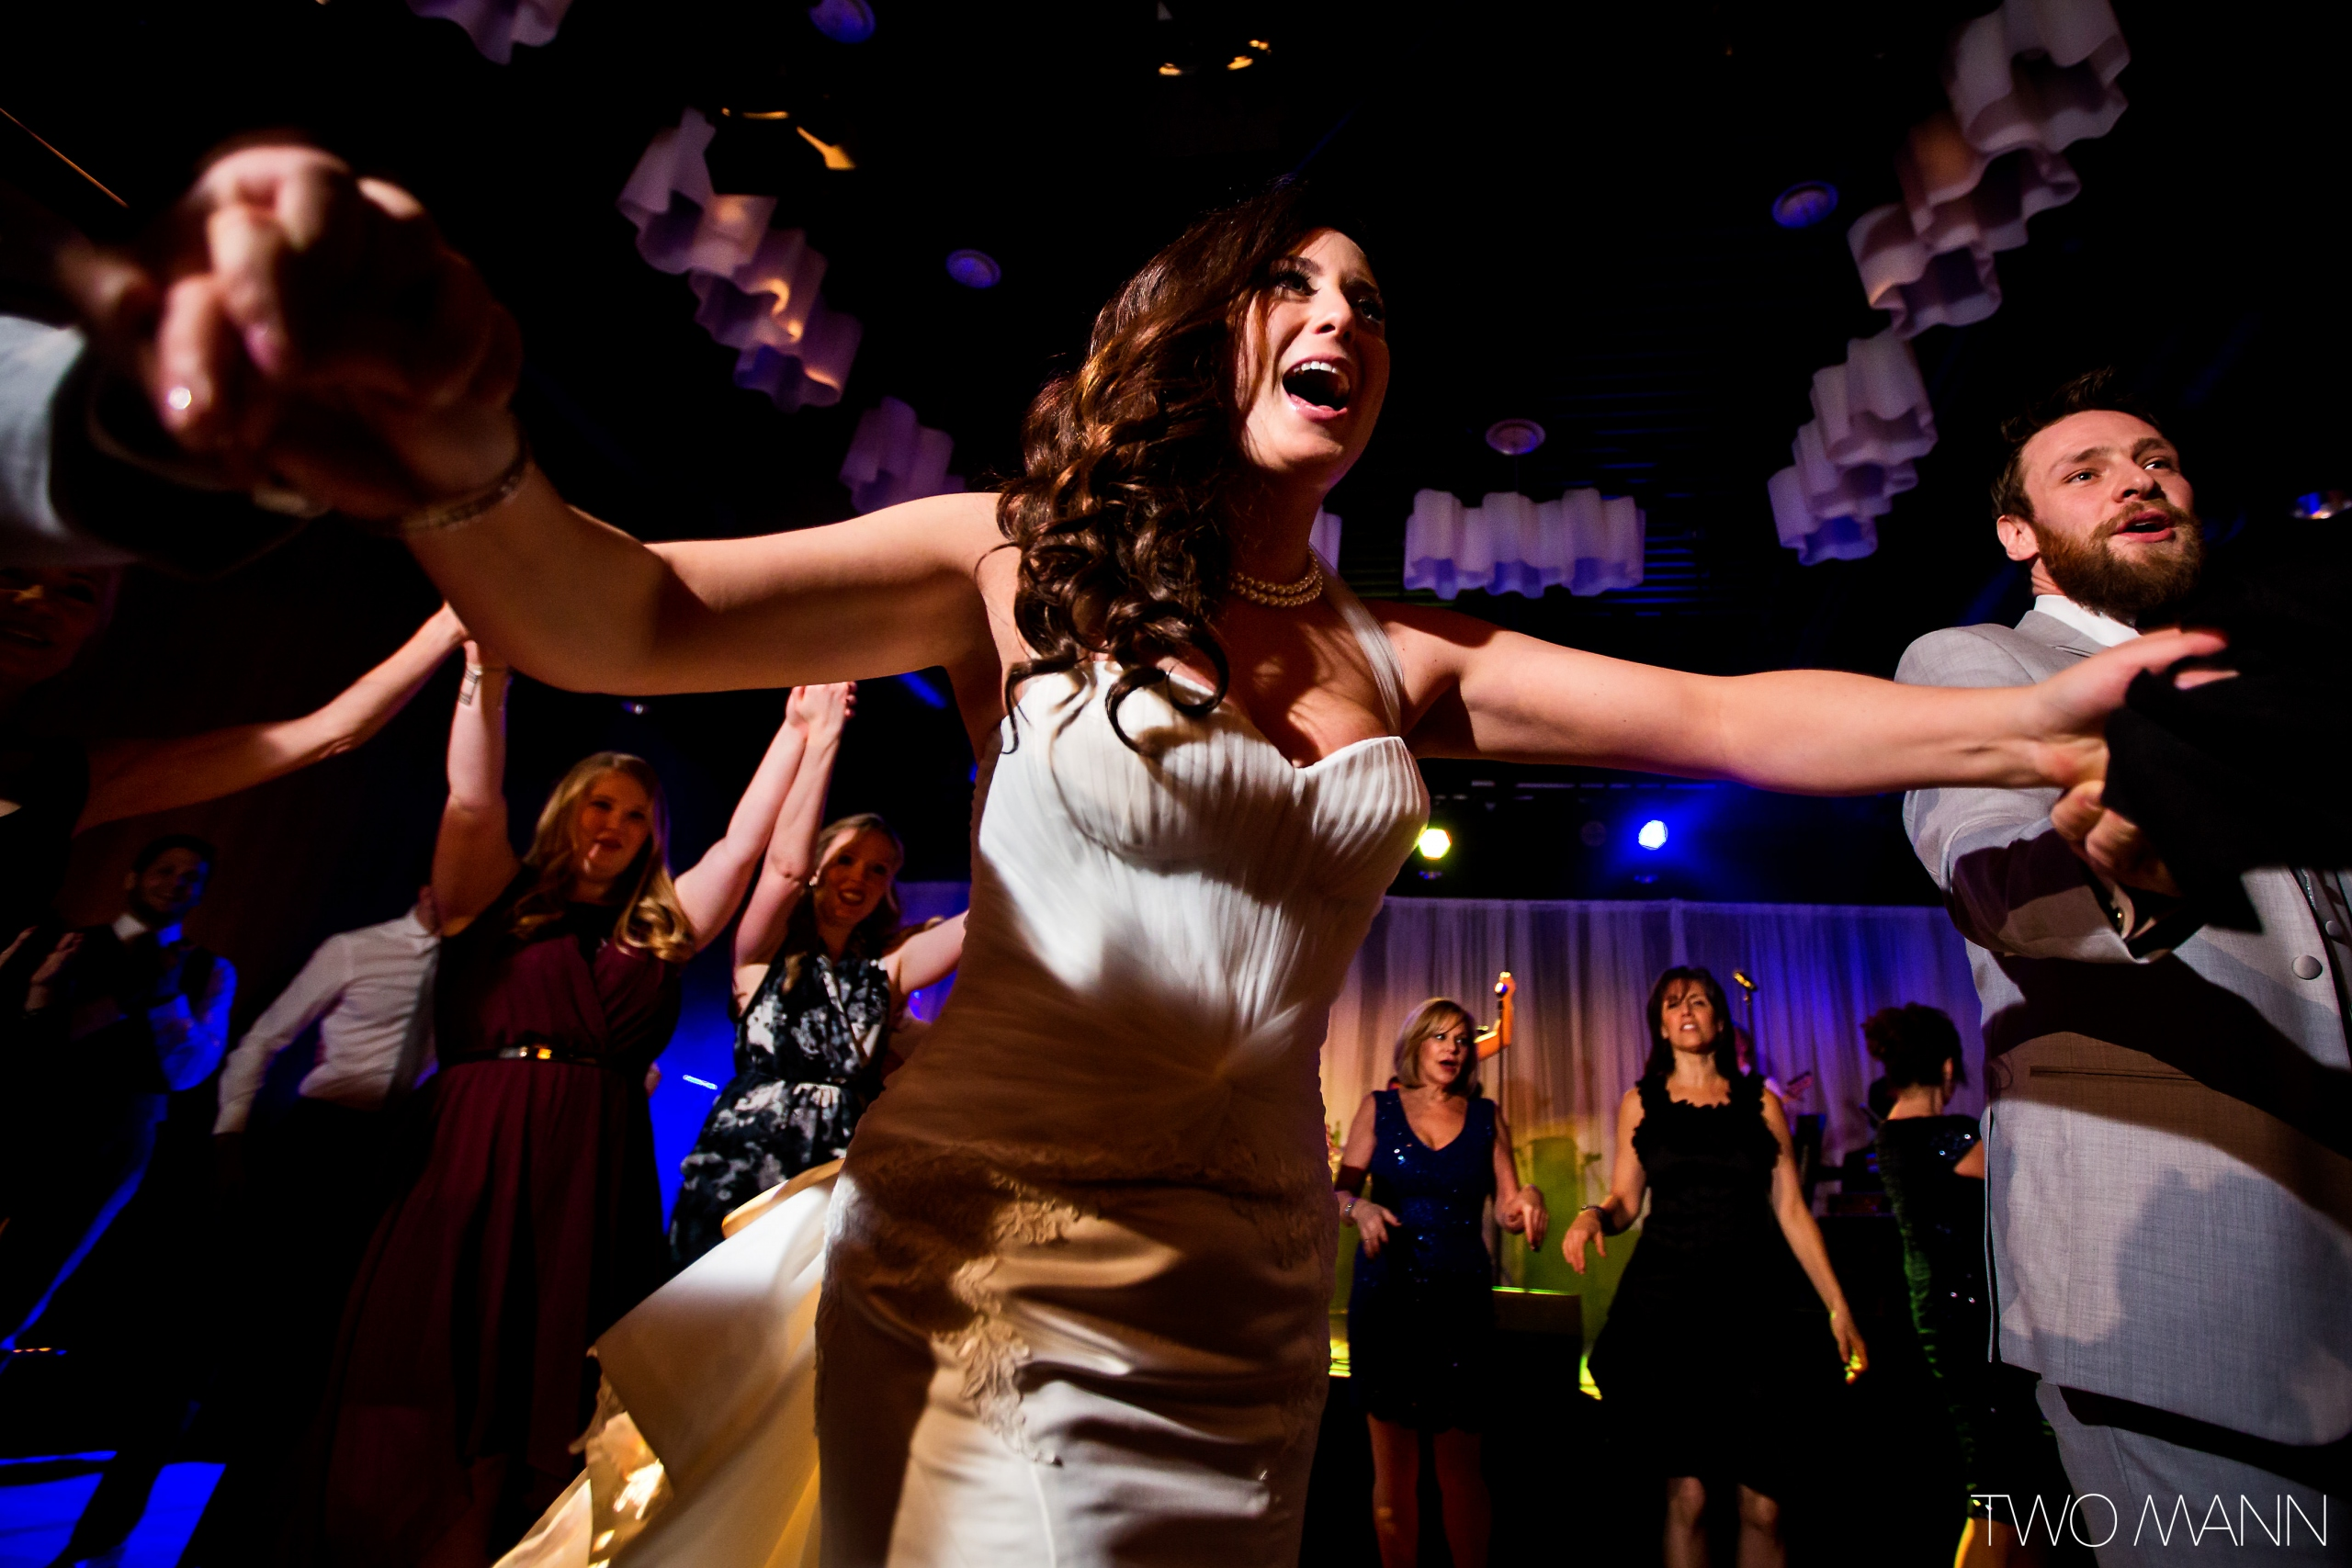 bride and guests dancing together